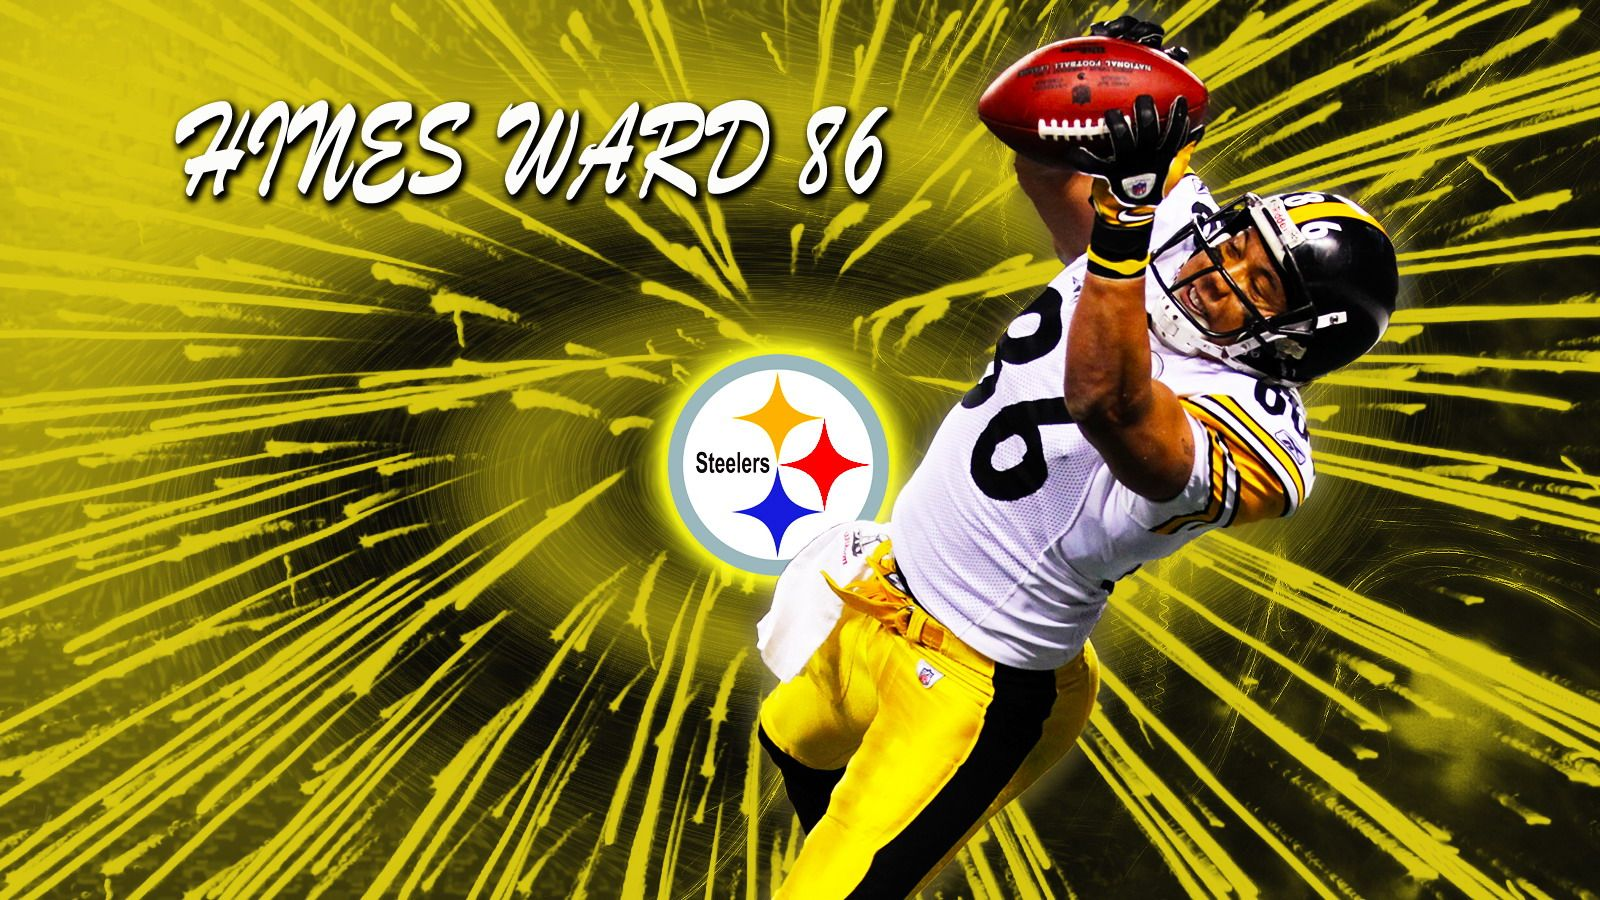 NFL Wallpapers - Hines Ward Of The Pittsburgh